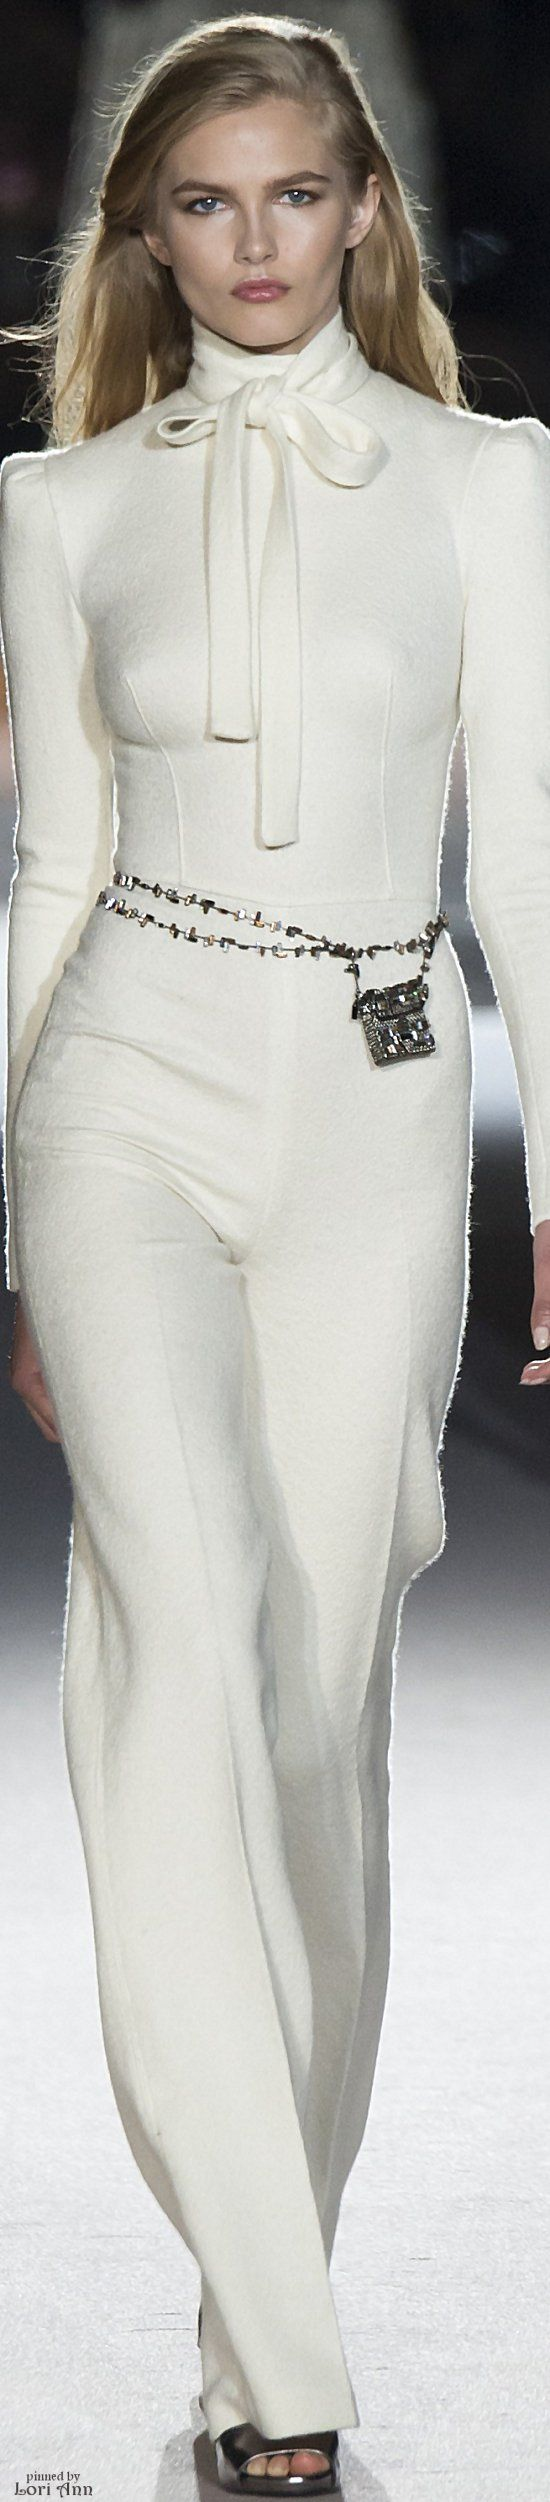 Ermanno Scervino Fall 2016 RTW